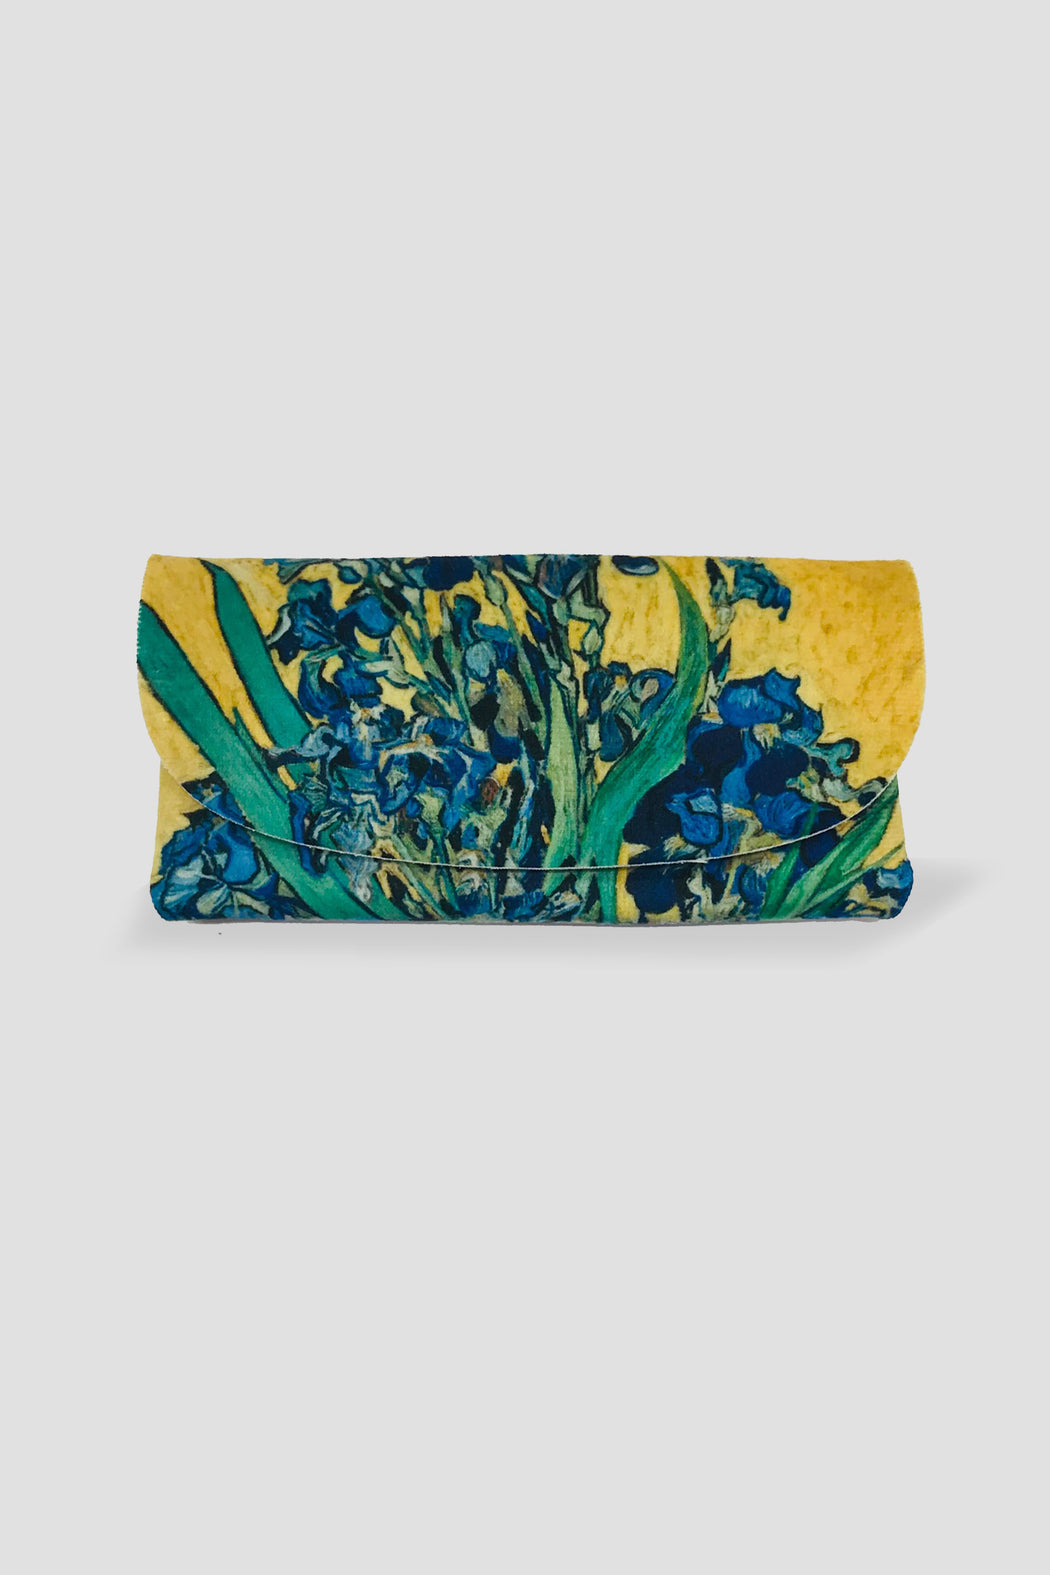 Kelnet-KELNET FRENCH VELOUR GLASSES CASE VASE WITH IRISES VINCENT VAN GOGH 11890-Mott and Mulberry